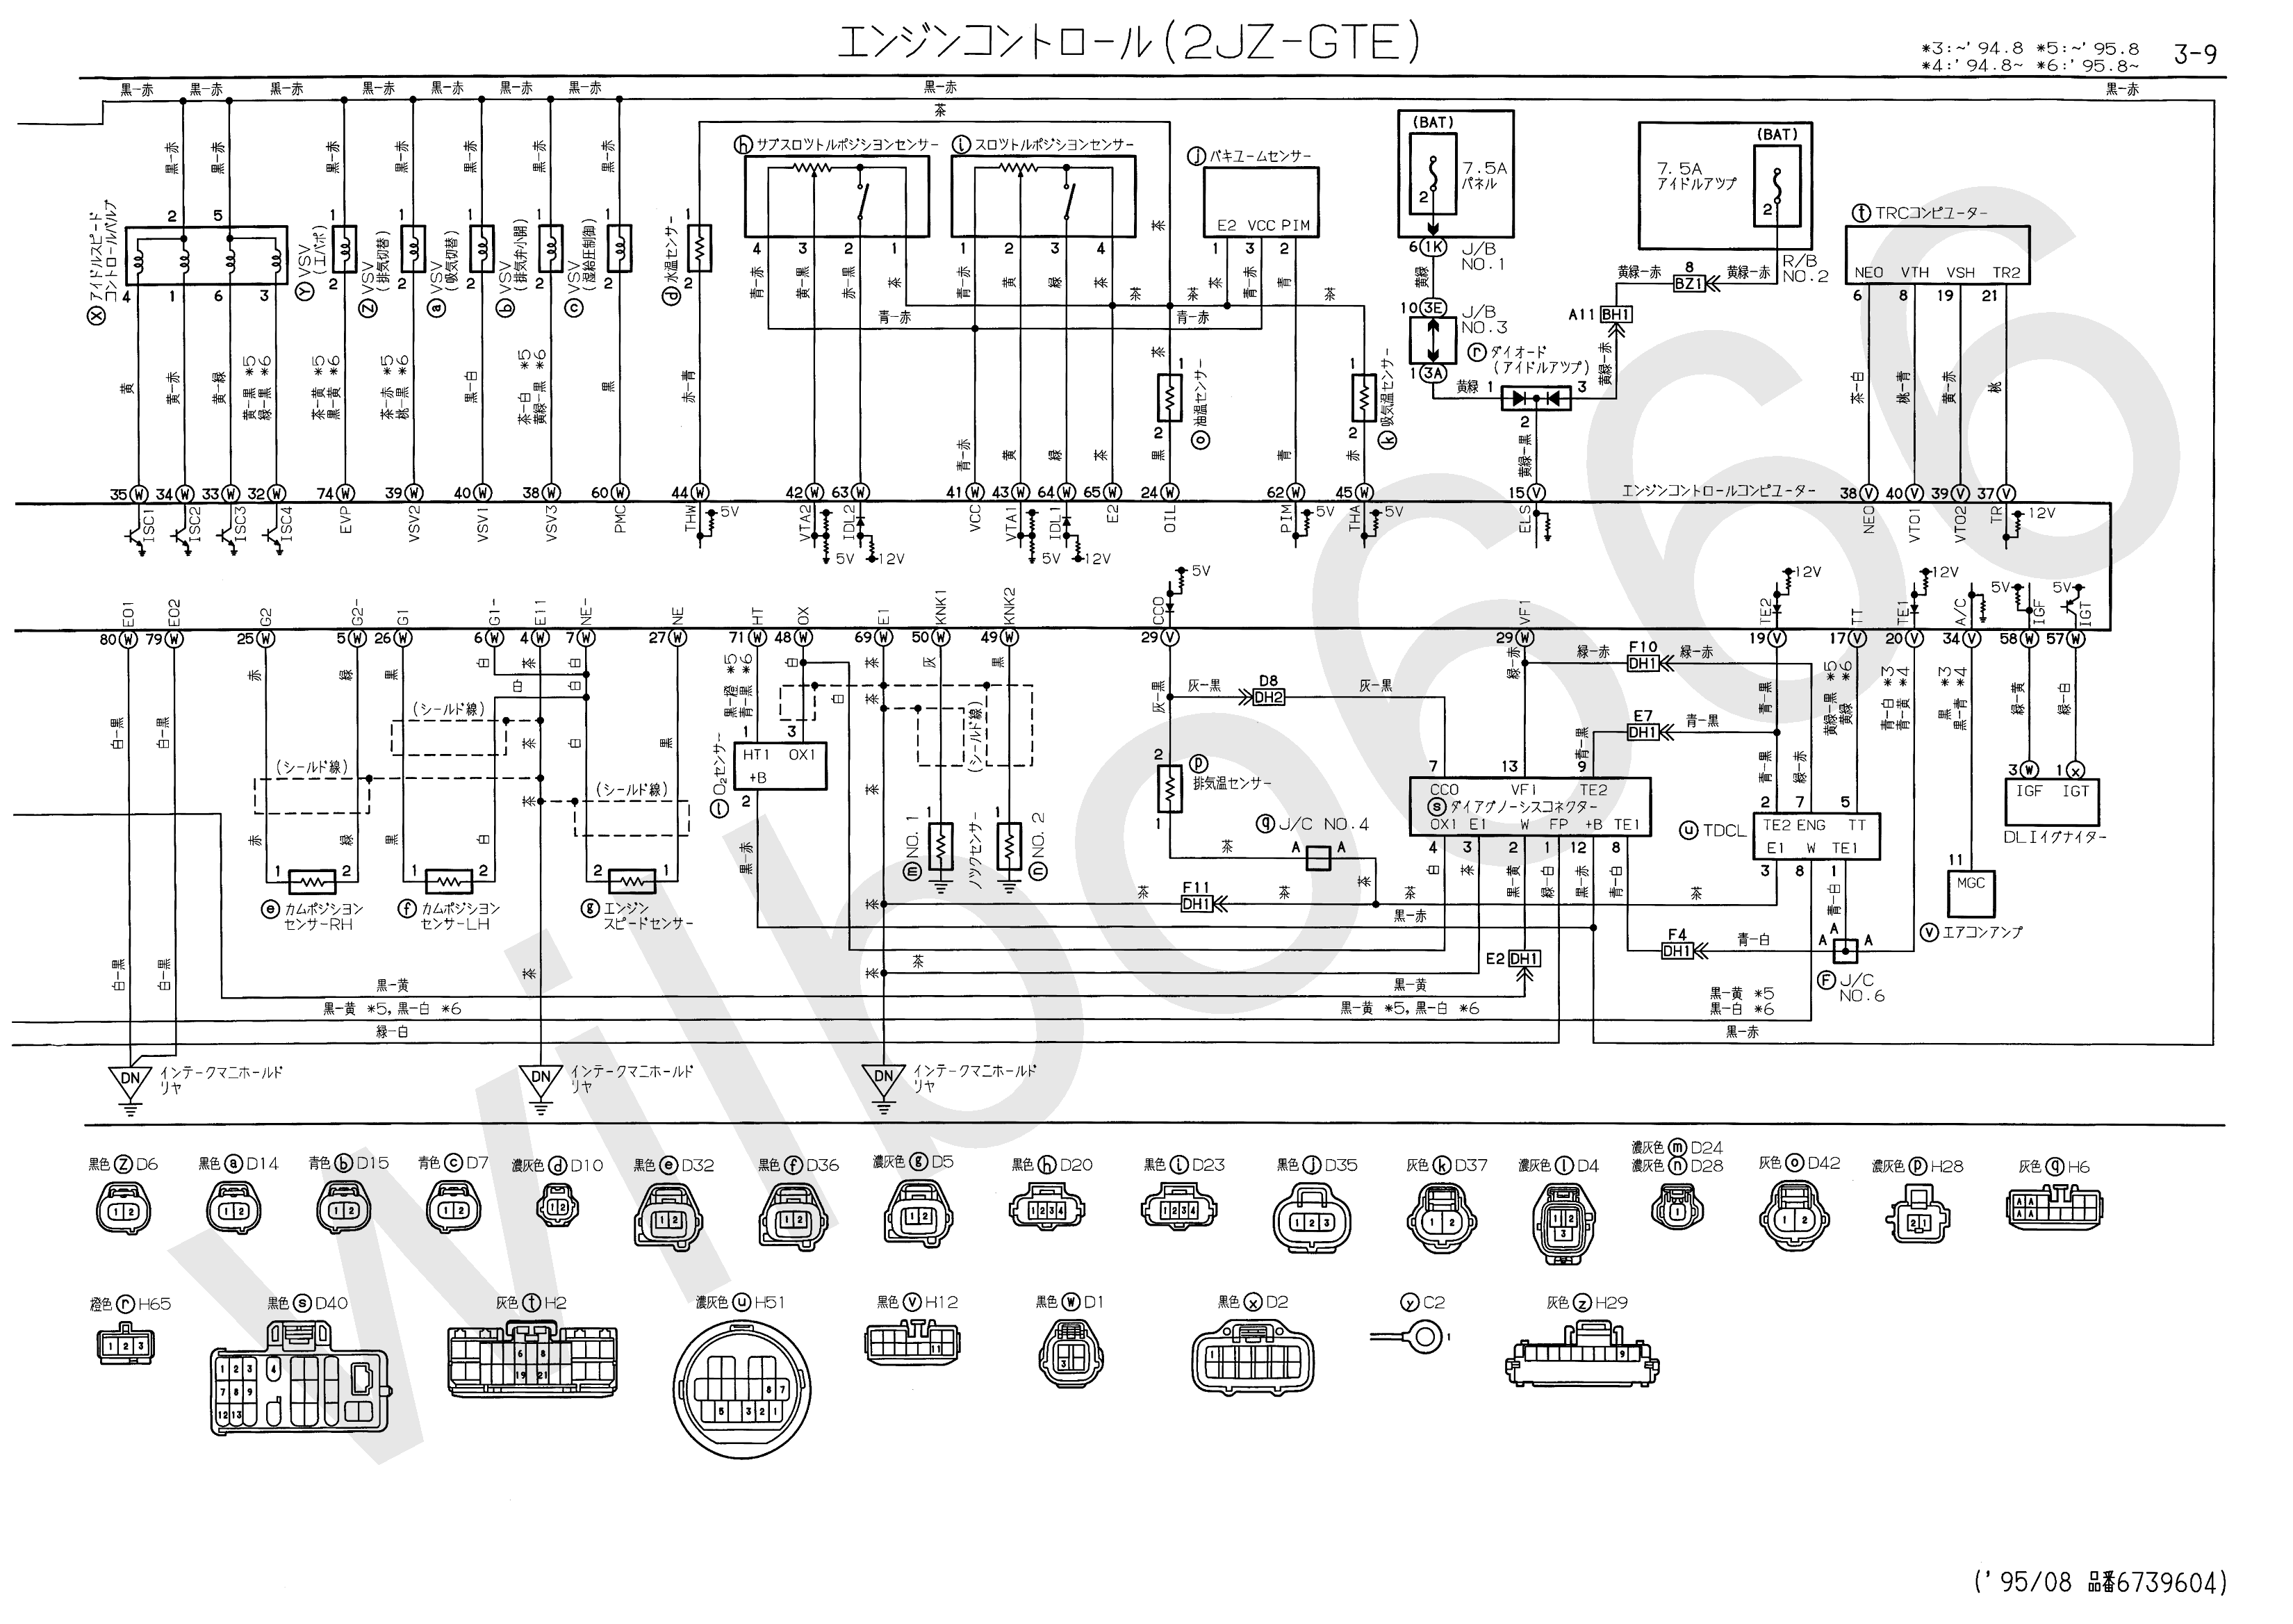 [DIAGRAM] 2002 Toyota Trailer Wiring Diagram Color Code